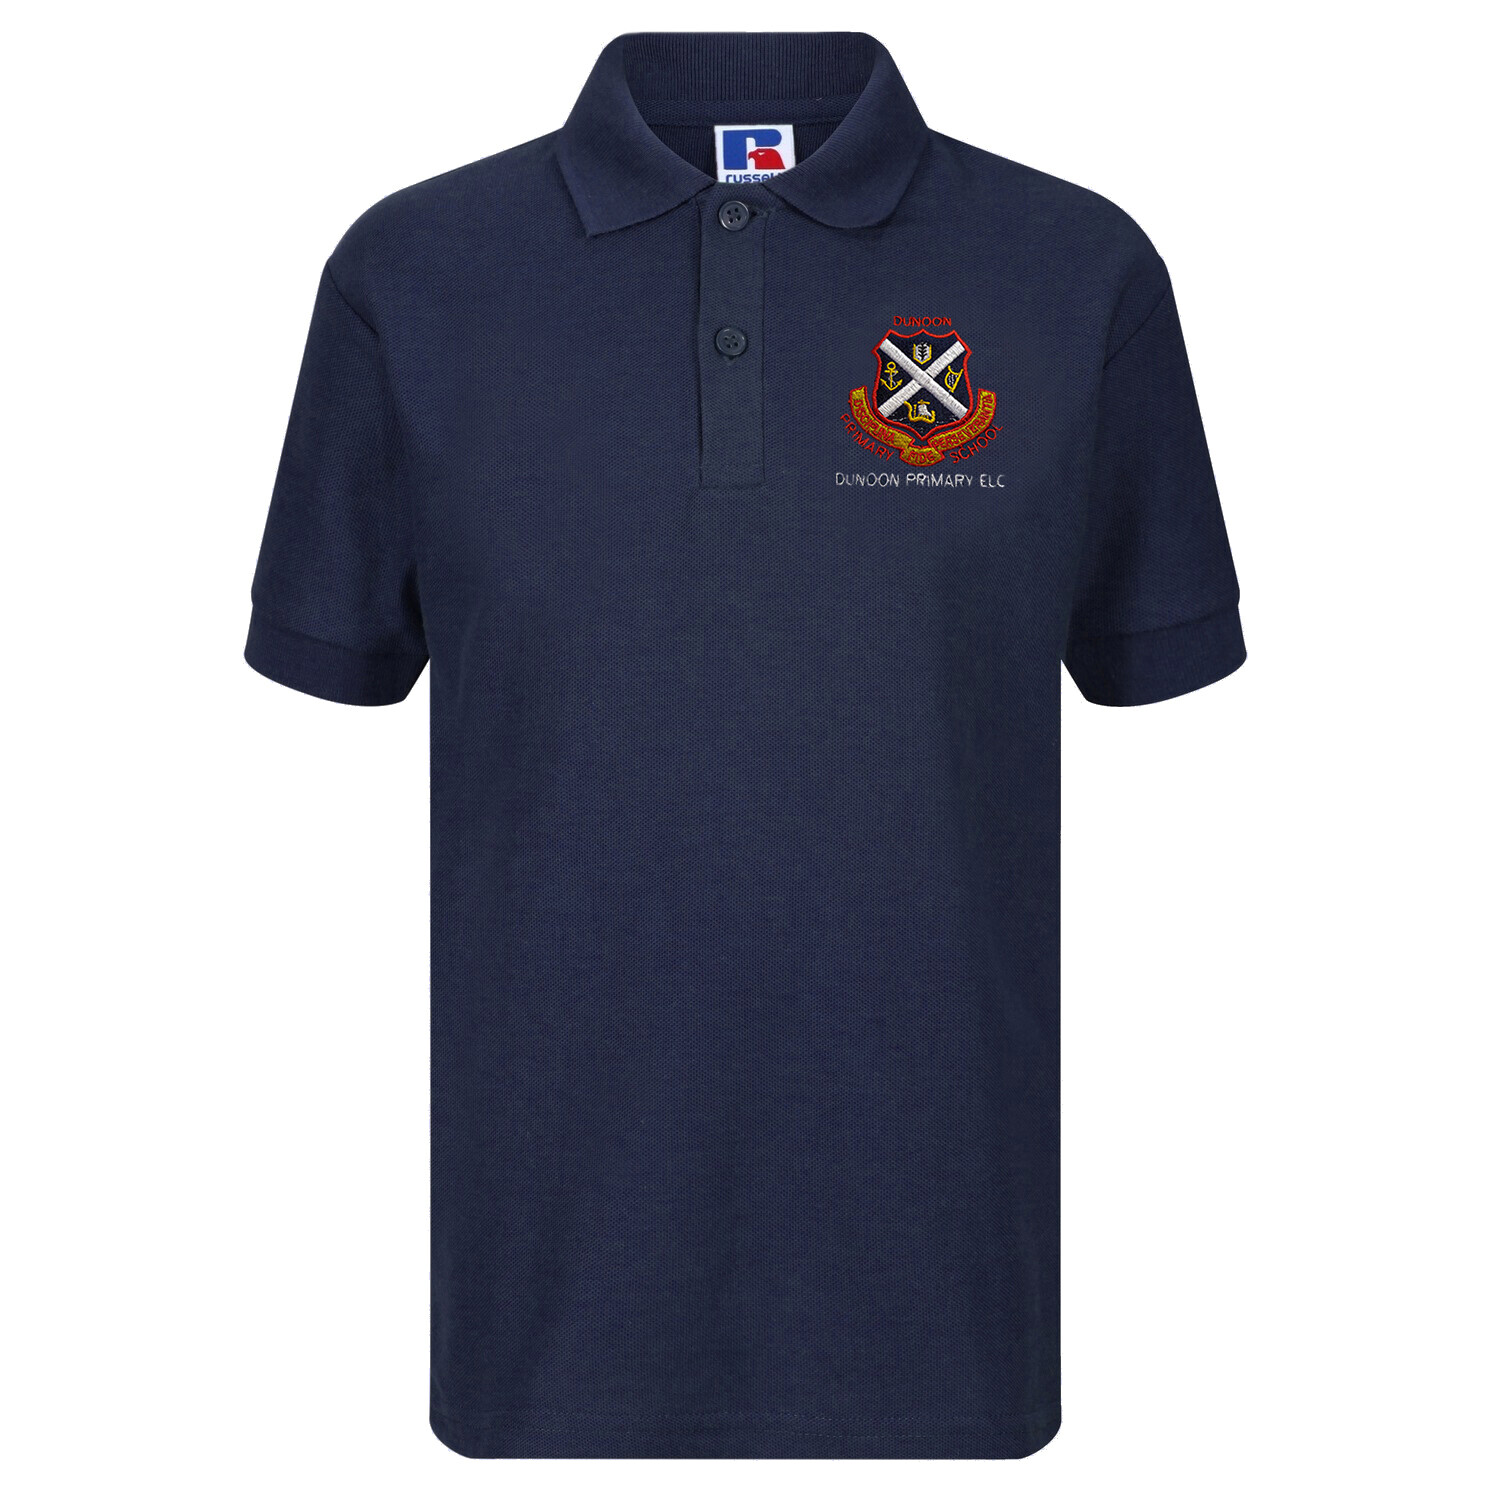 Dunoon Primary ELC Nursery Staff Polo (Female-Fit) (RCS539F)